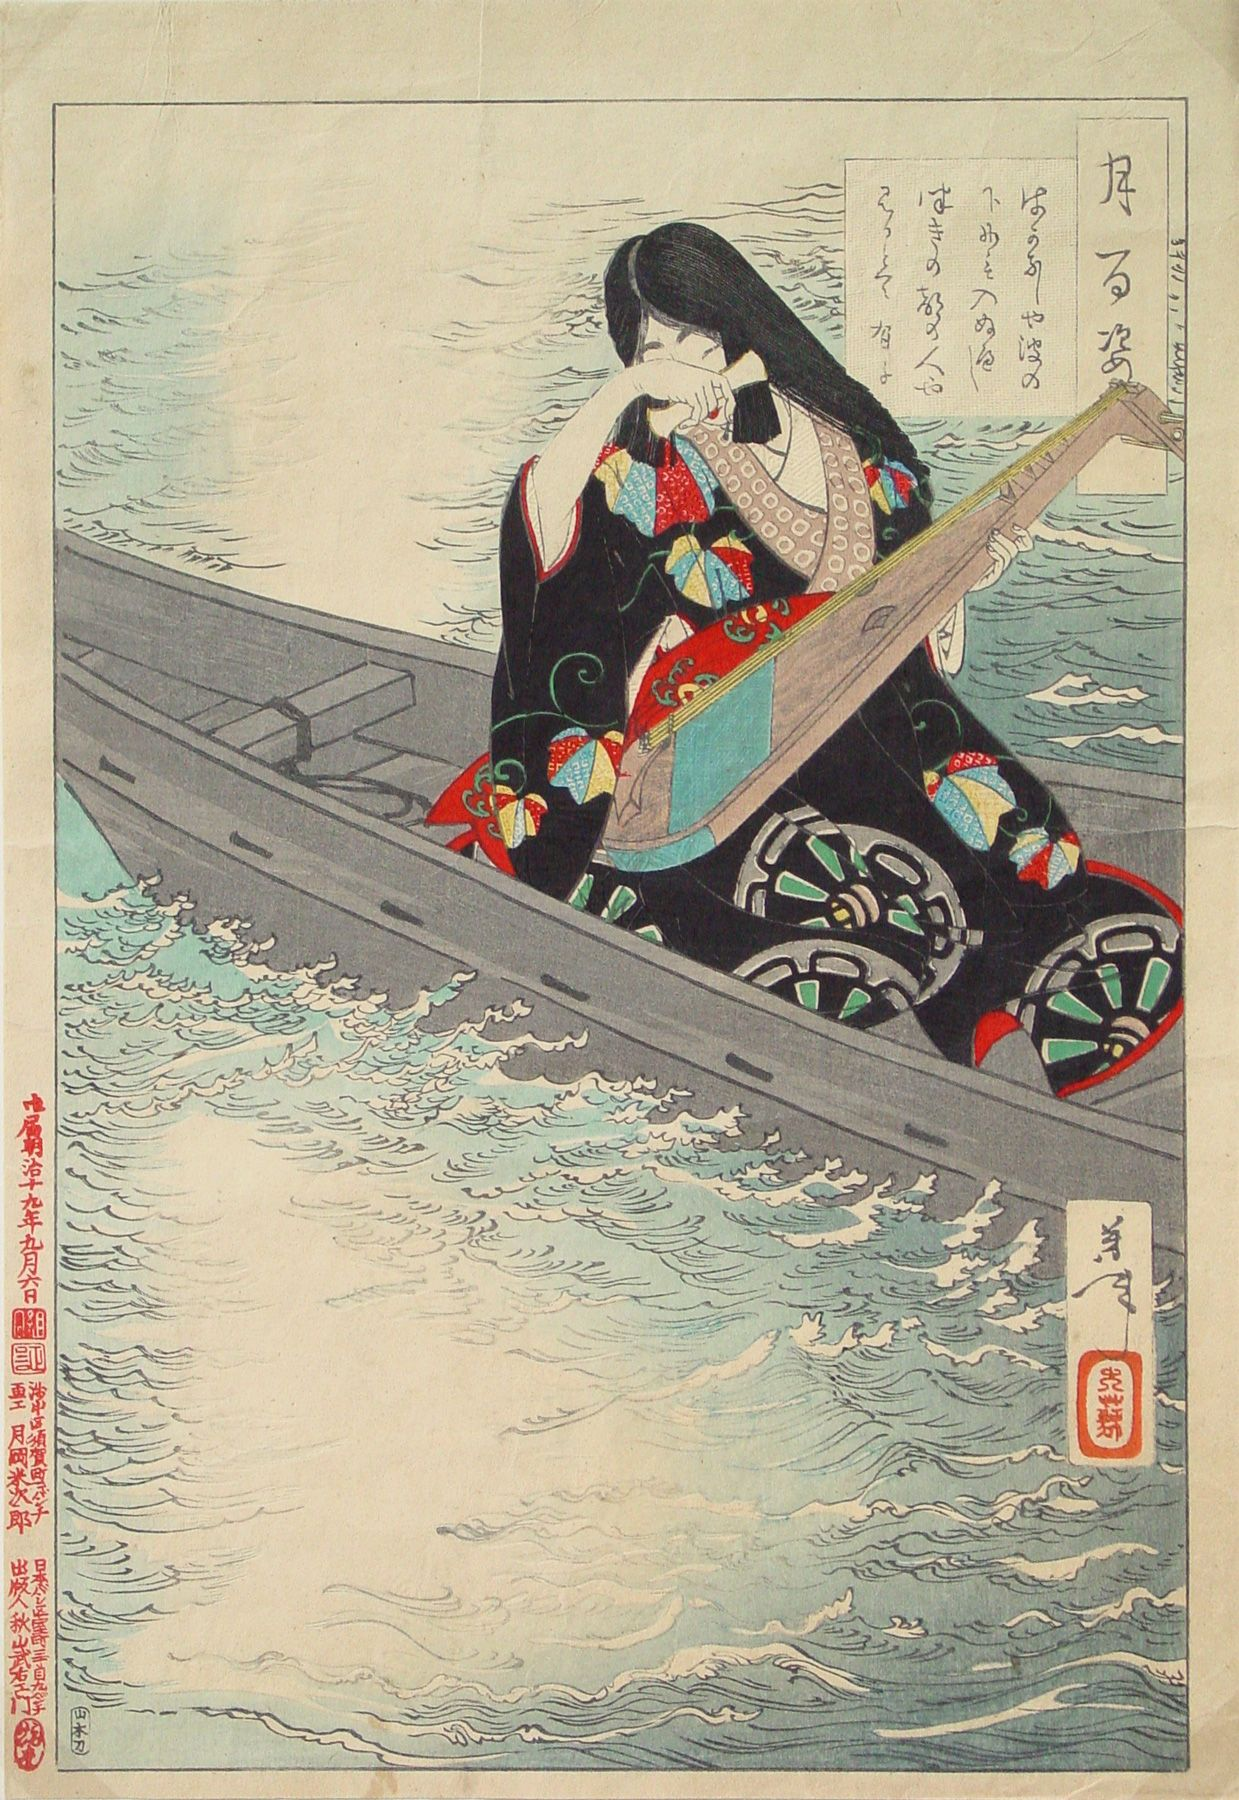 .:. Ariko - Sink Beneath the Waves from the series One Hundred Aspects of the Moon by Tsukioka Yoshitoshi, 1886